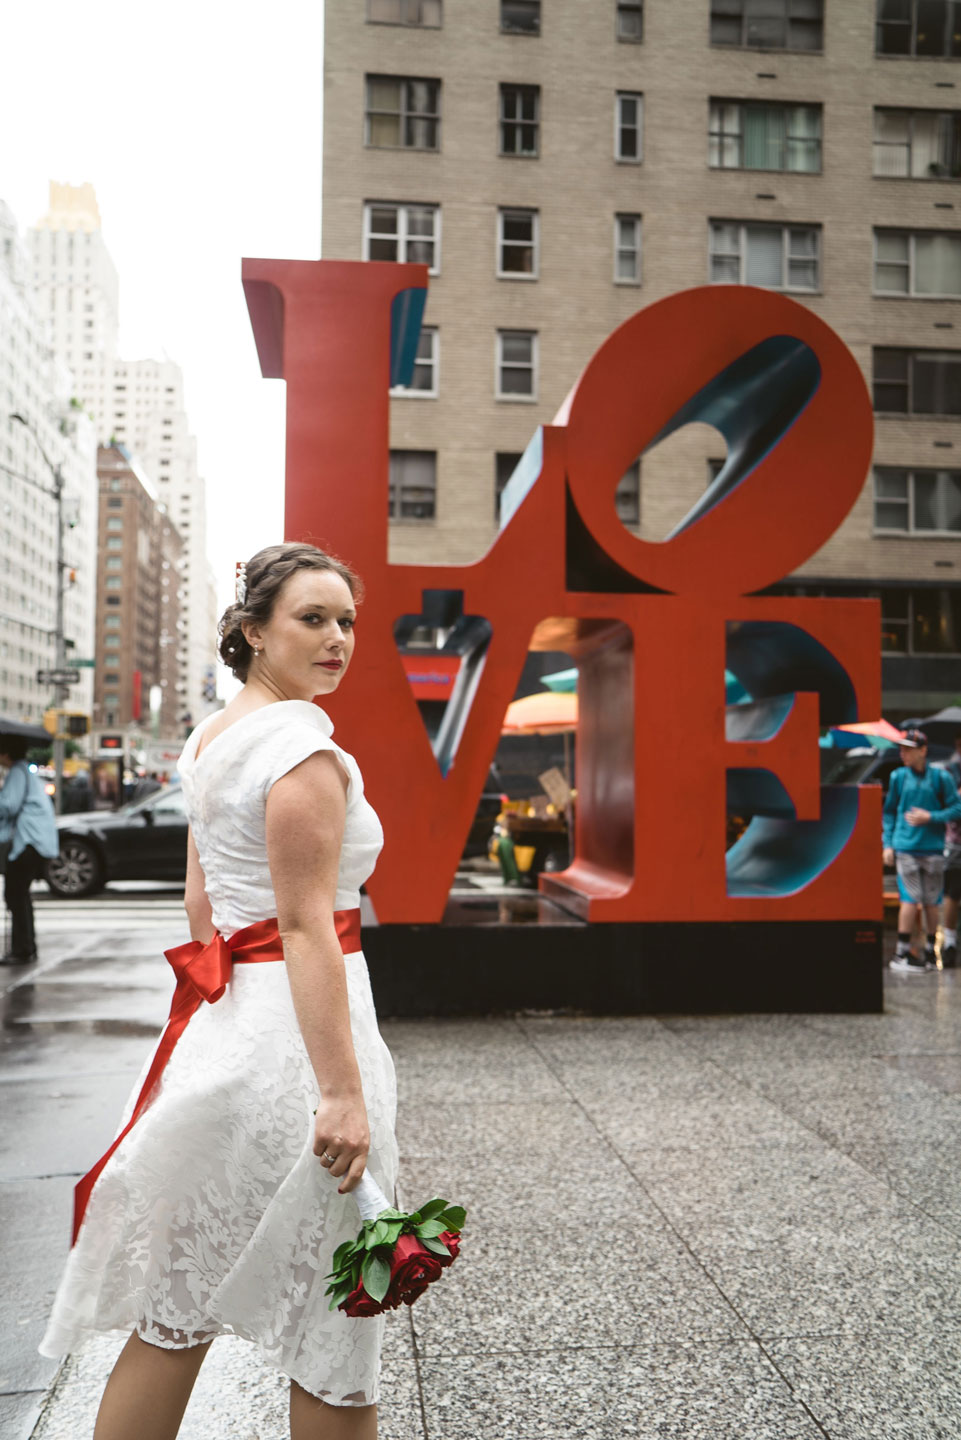 Photo of a bride by Love sign in Manhattan